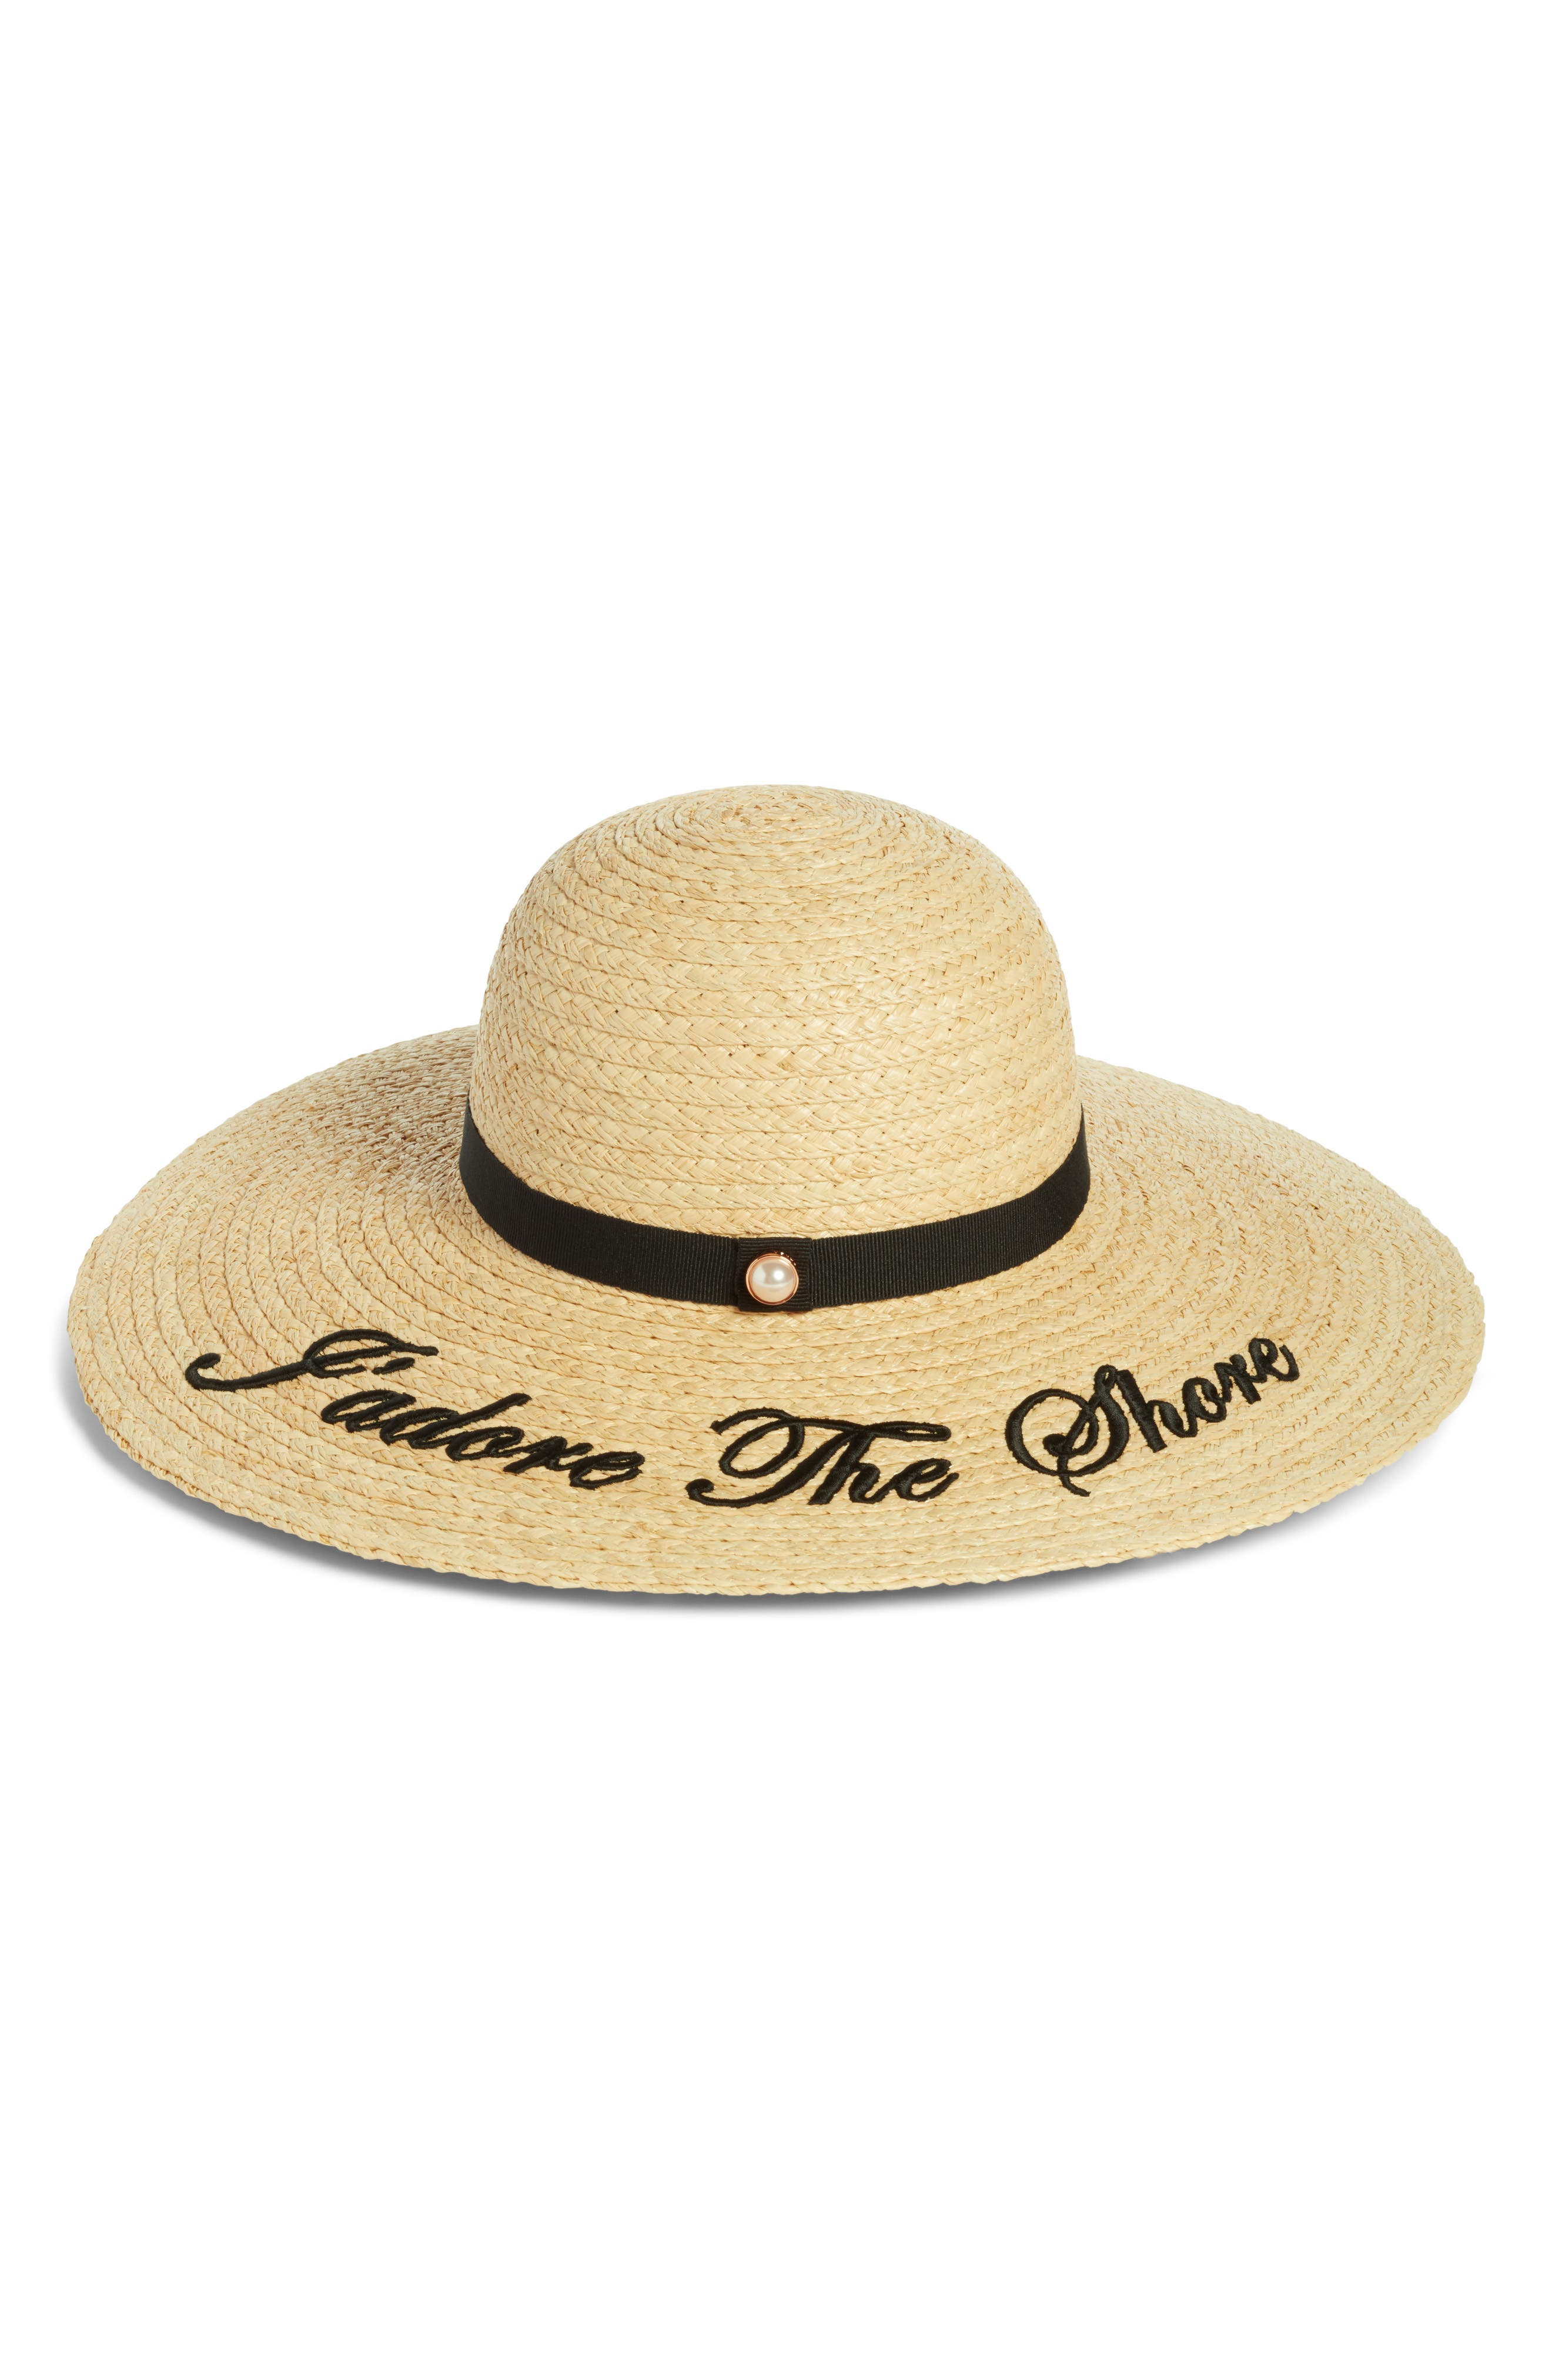 Script Embroidered Floppy Hat,                             Main thumbnail 1, color,                             001